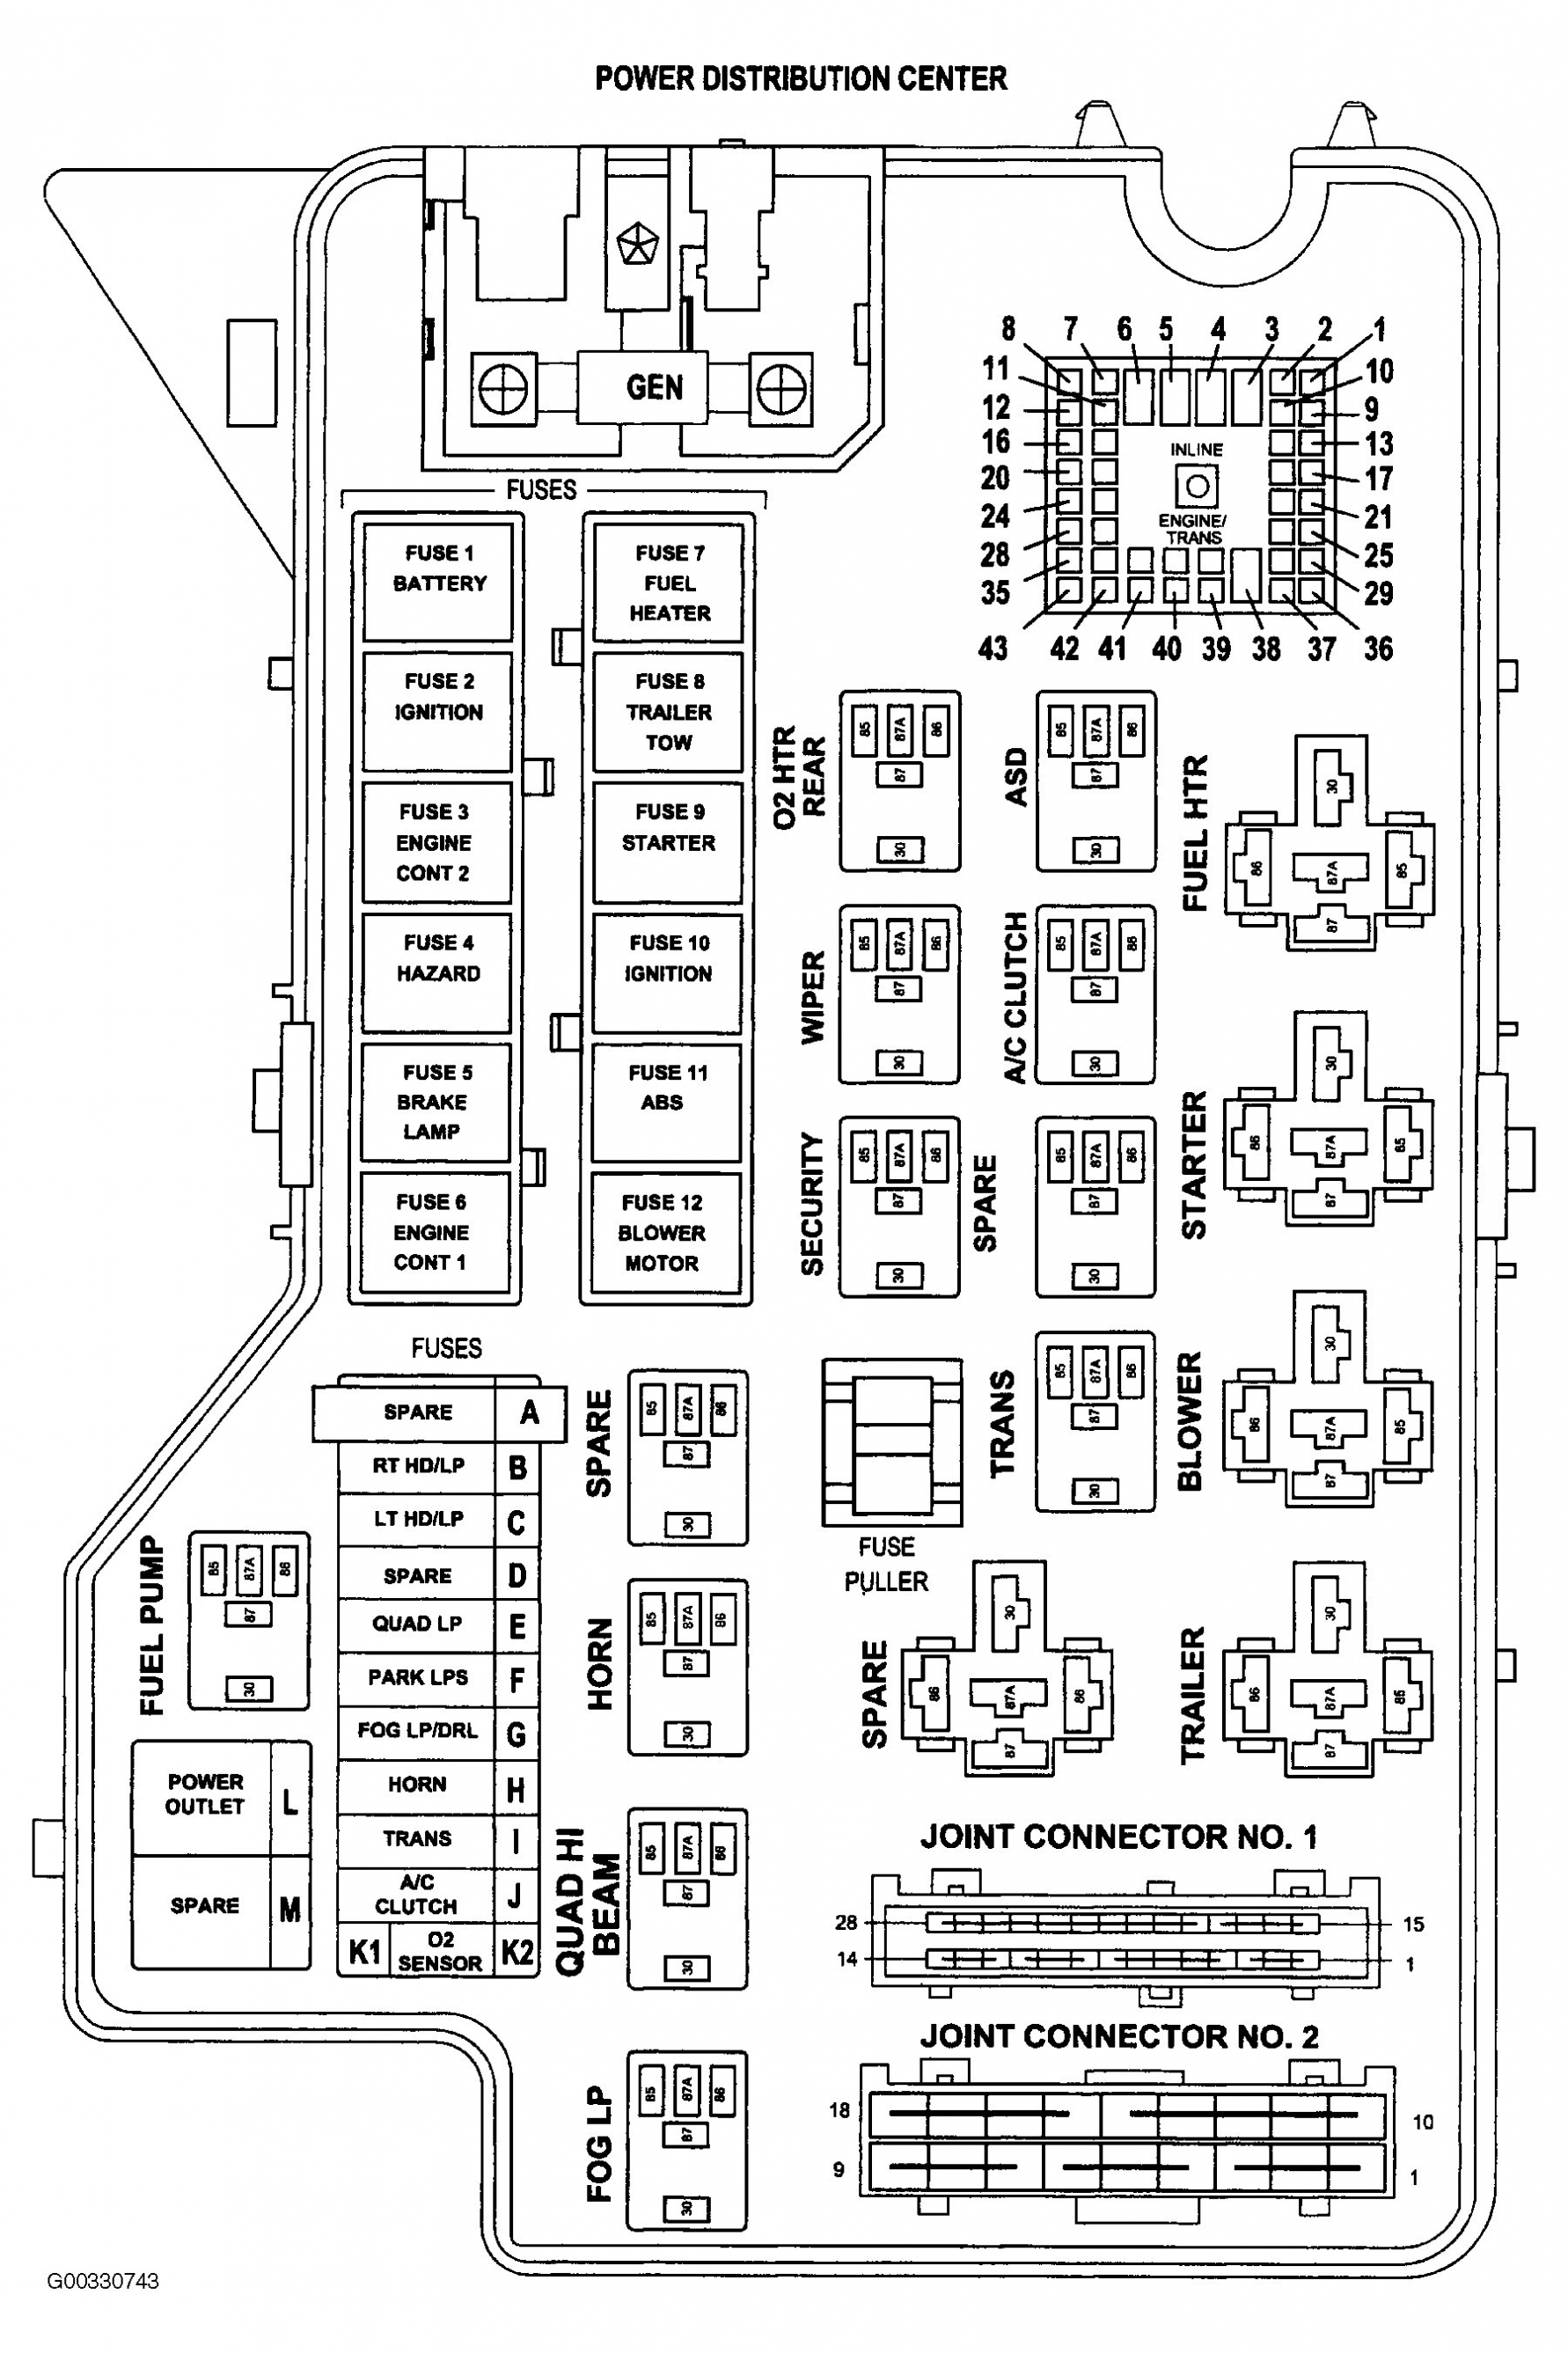 fve_146] dodge ram 3500 fuse box location | wiring diagram fve_146 |  series-battery.centrostudimad.it  centrostudimad.it